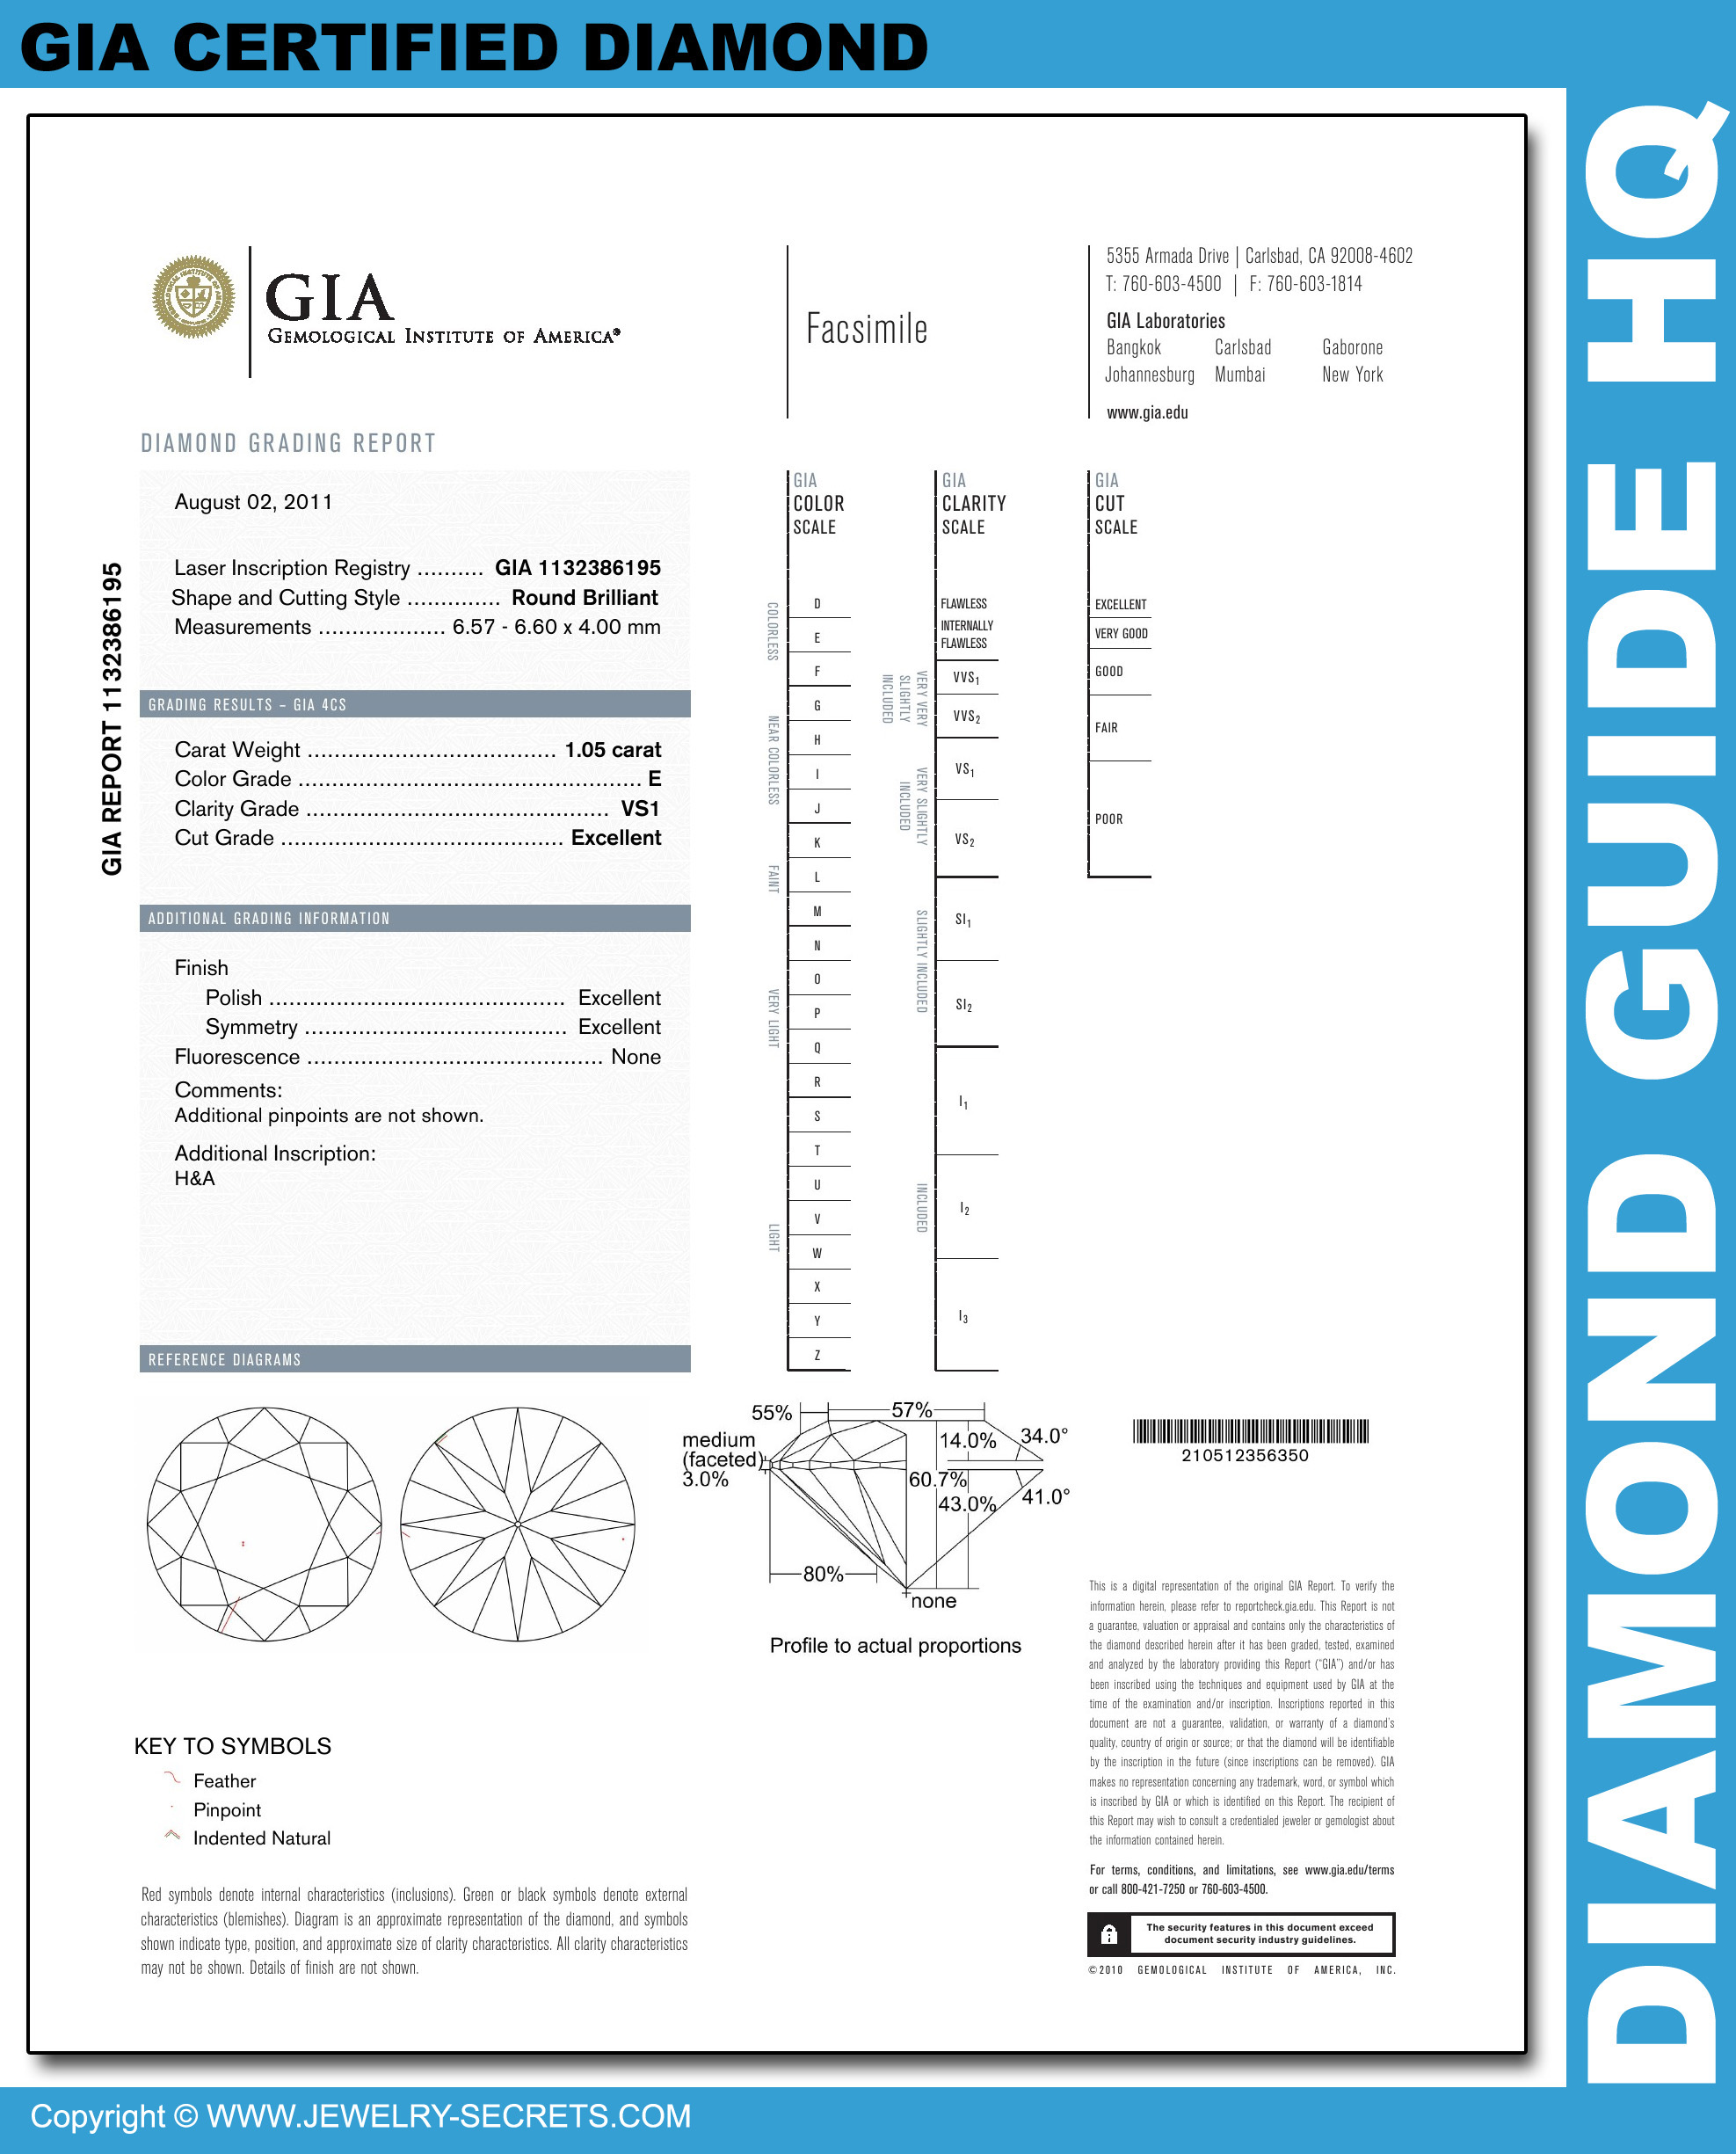 How To Read A Gia Diamond Report Jewelry Secrets